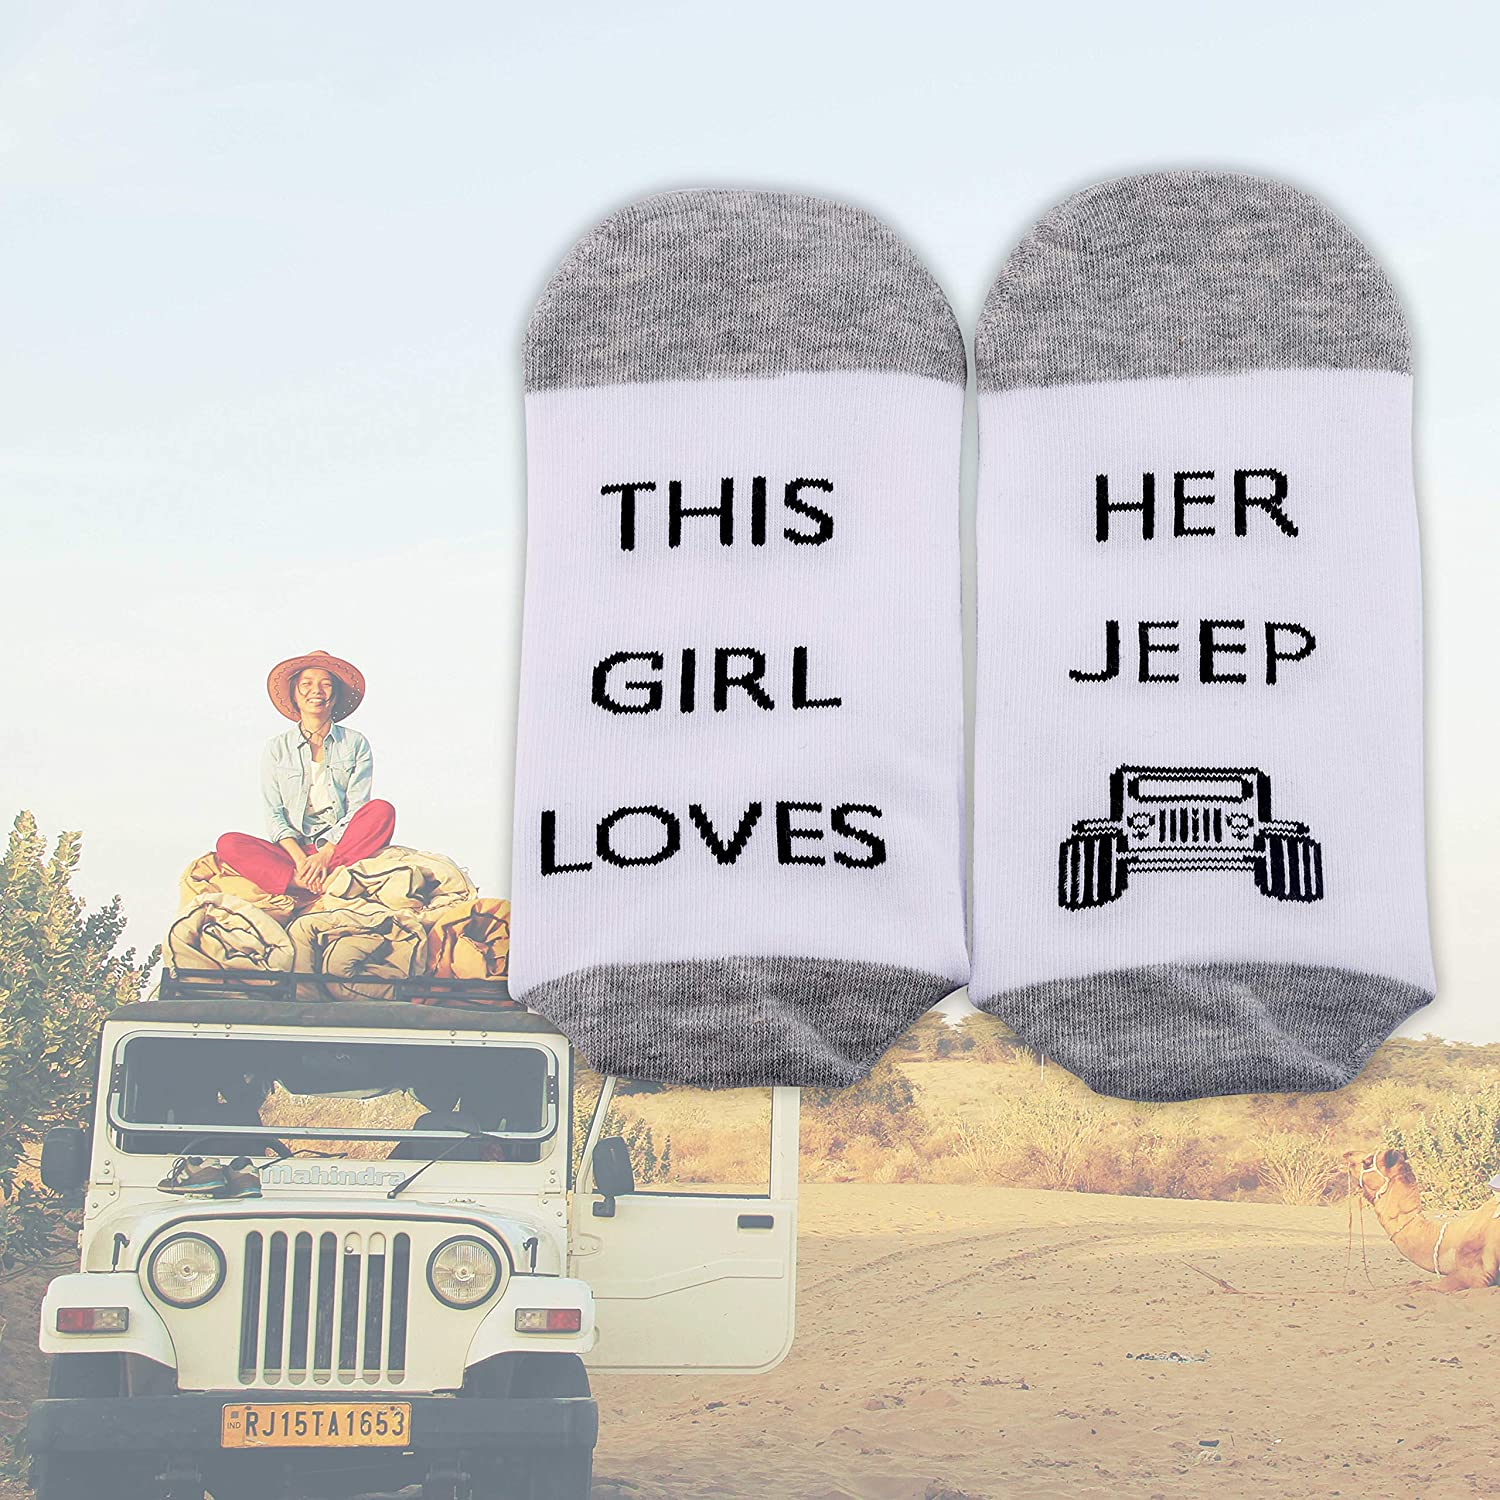 Jeep Girl Socks Jeep Owner Lover Gifts 2 Pairs This Girl Loves Her Jeep Jeep Novelty Crew Socks Jeep Wrangler Gifts for Women